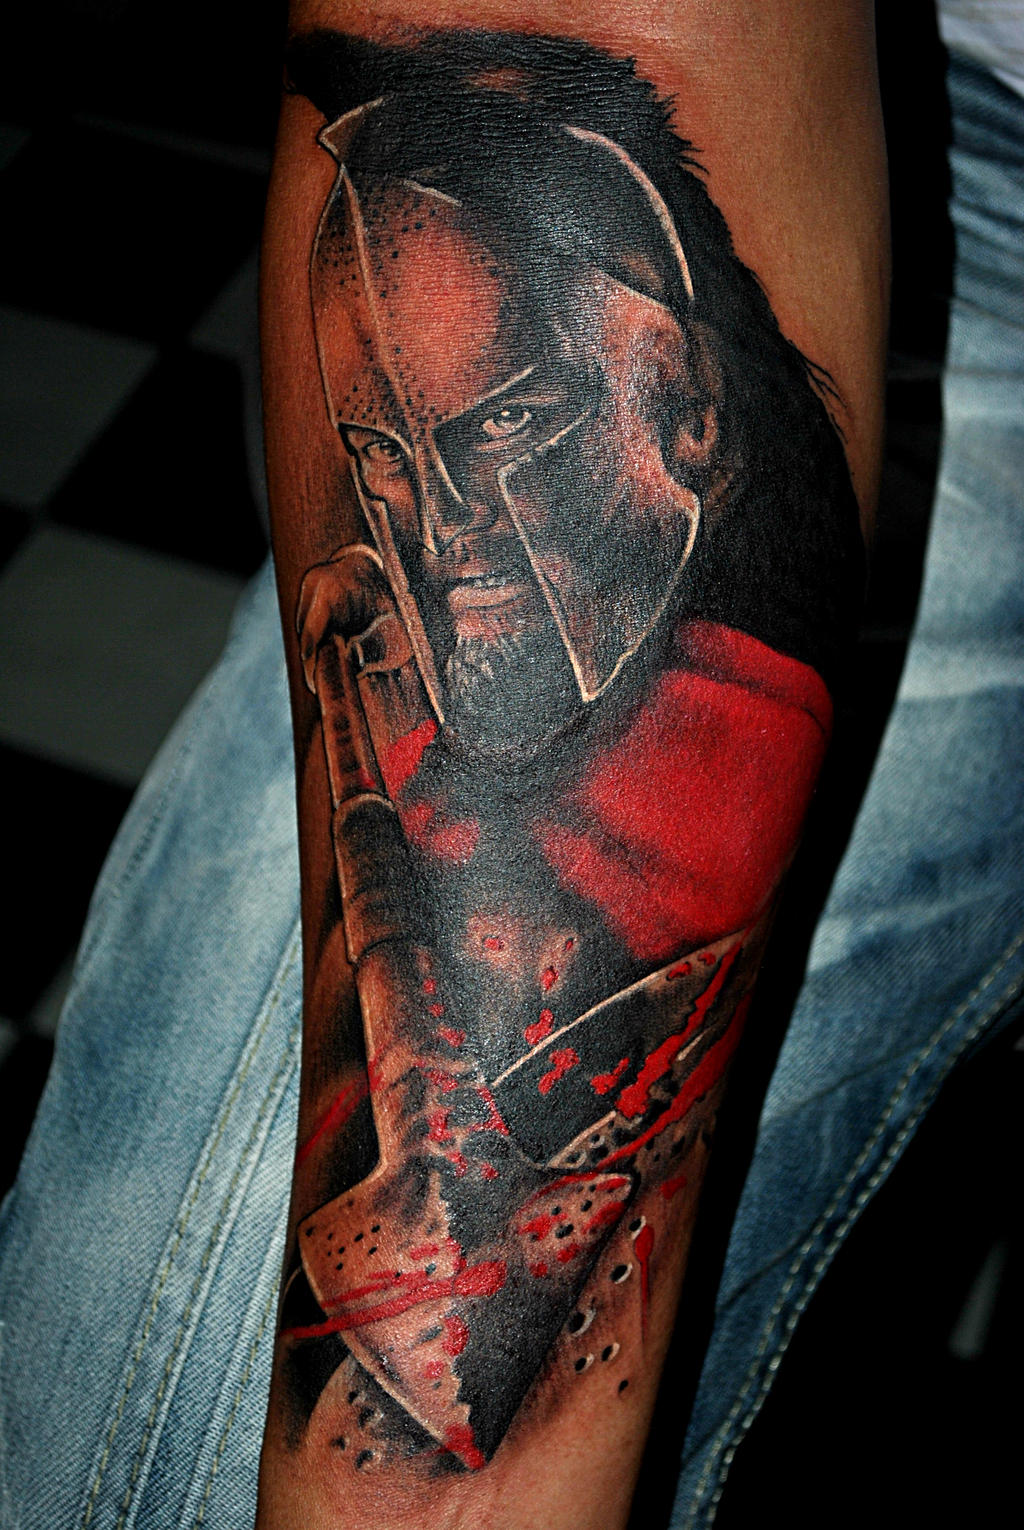 Spartan Tattoos 4 Pictures to Pin on Pinterest - TattoosKid